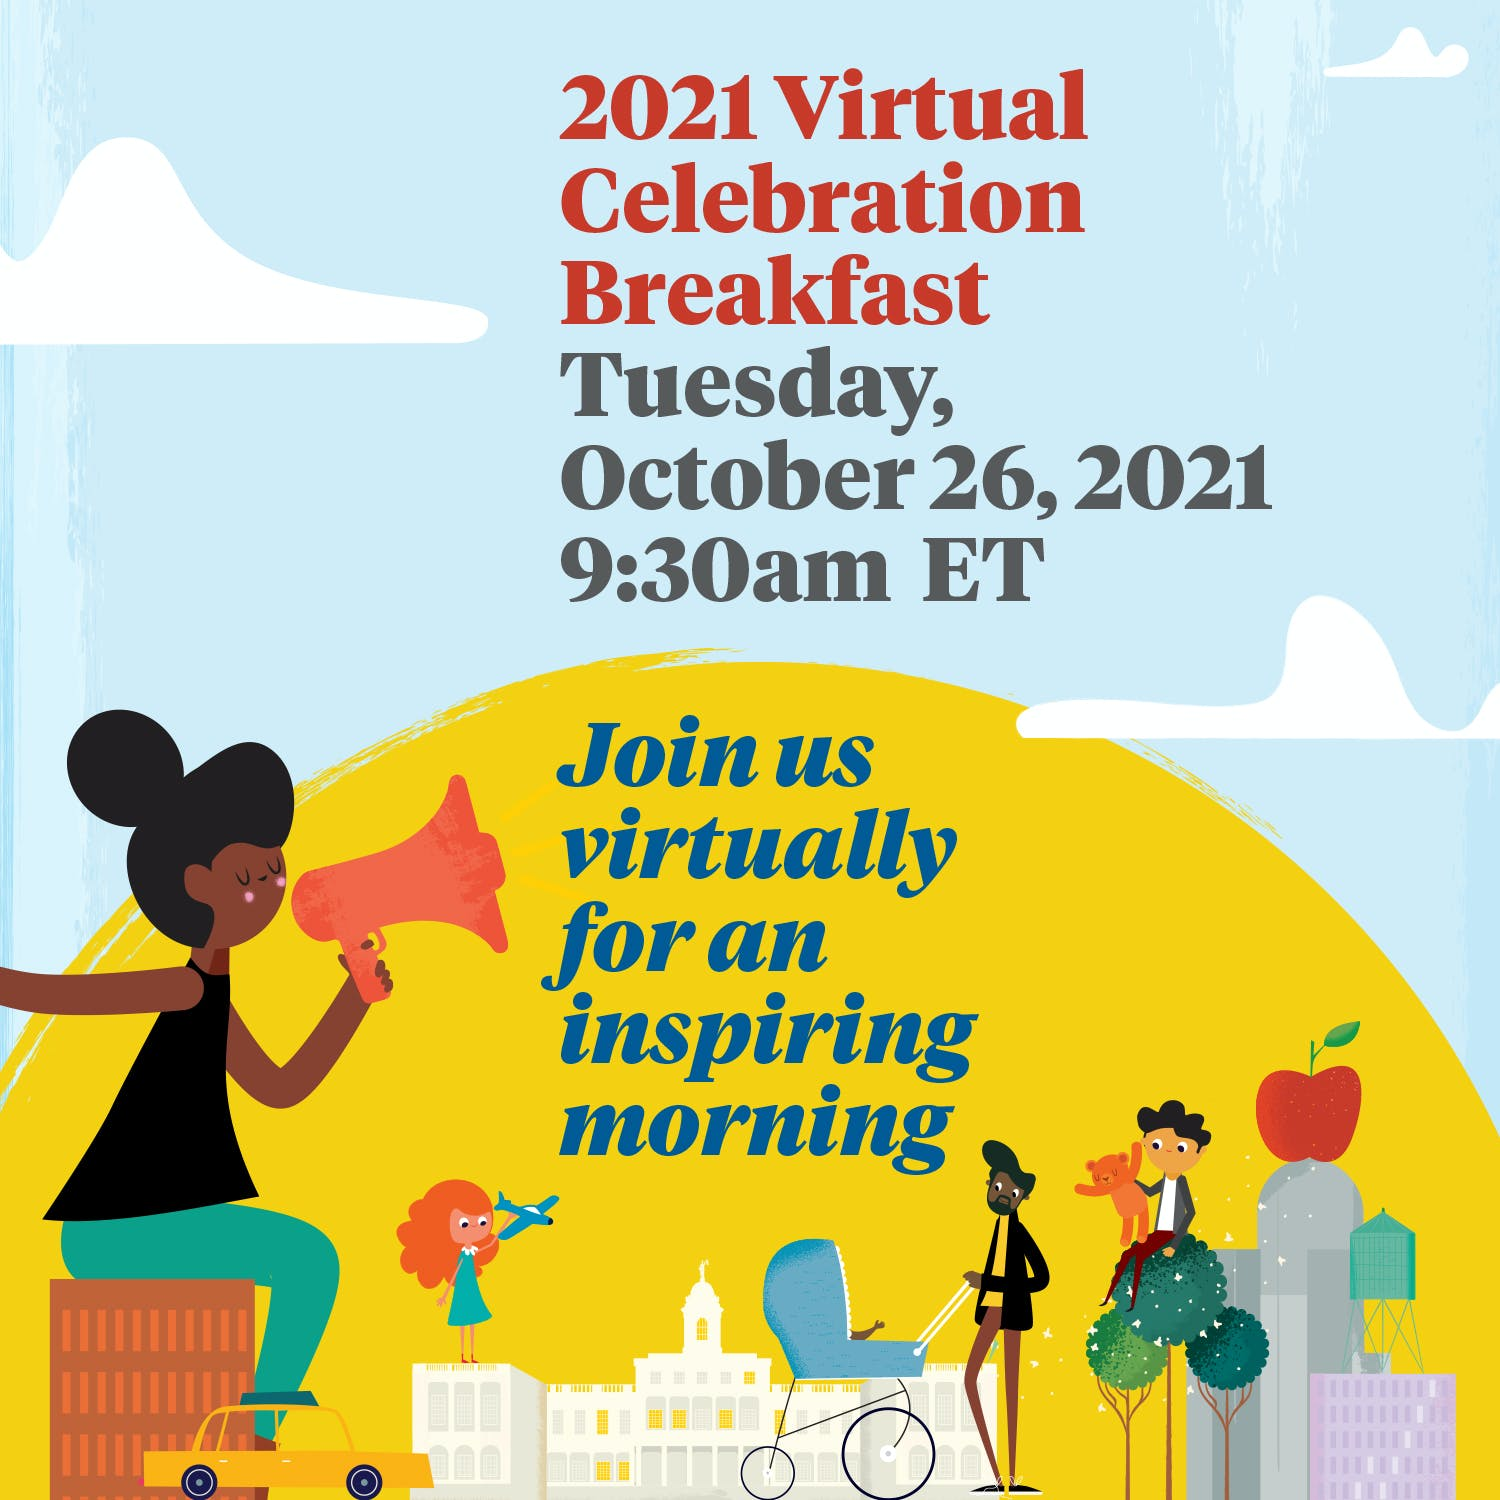 Join us Tuesday, October 26, 2021 at 9:30am ET Join us Virtually for an Inspiring Morning